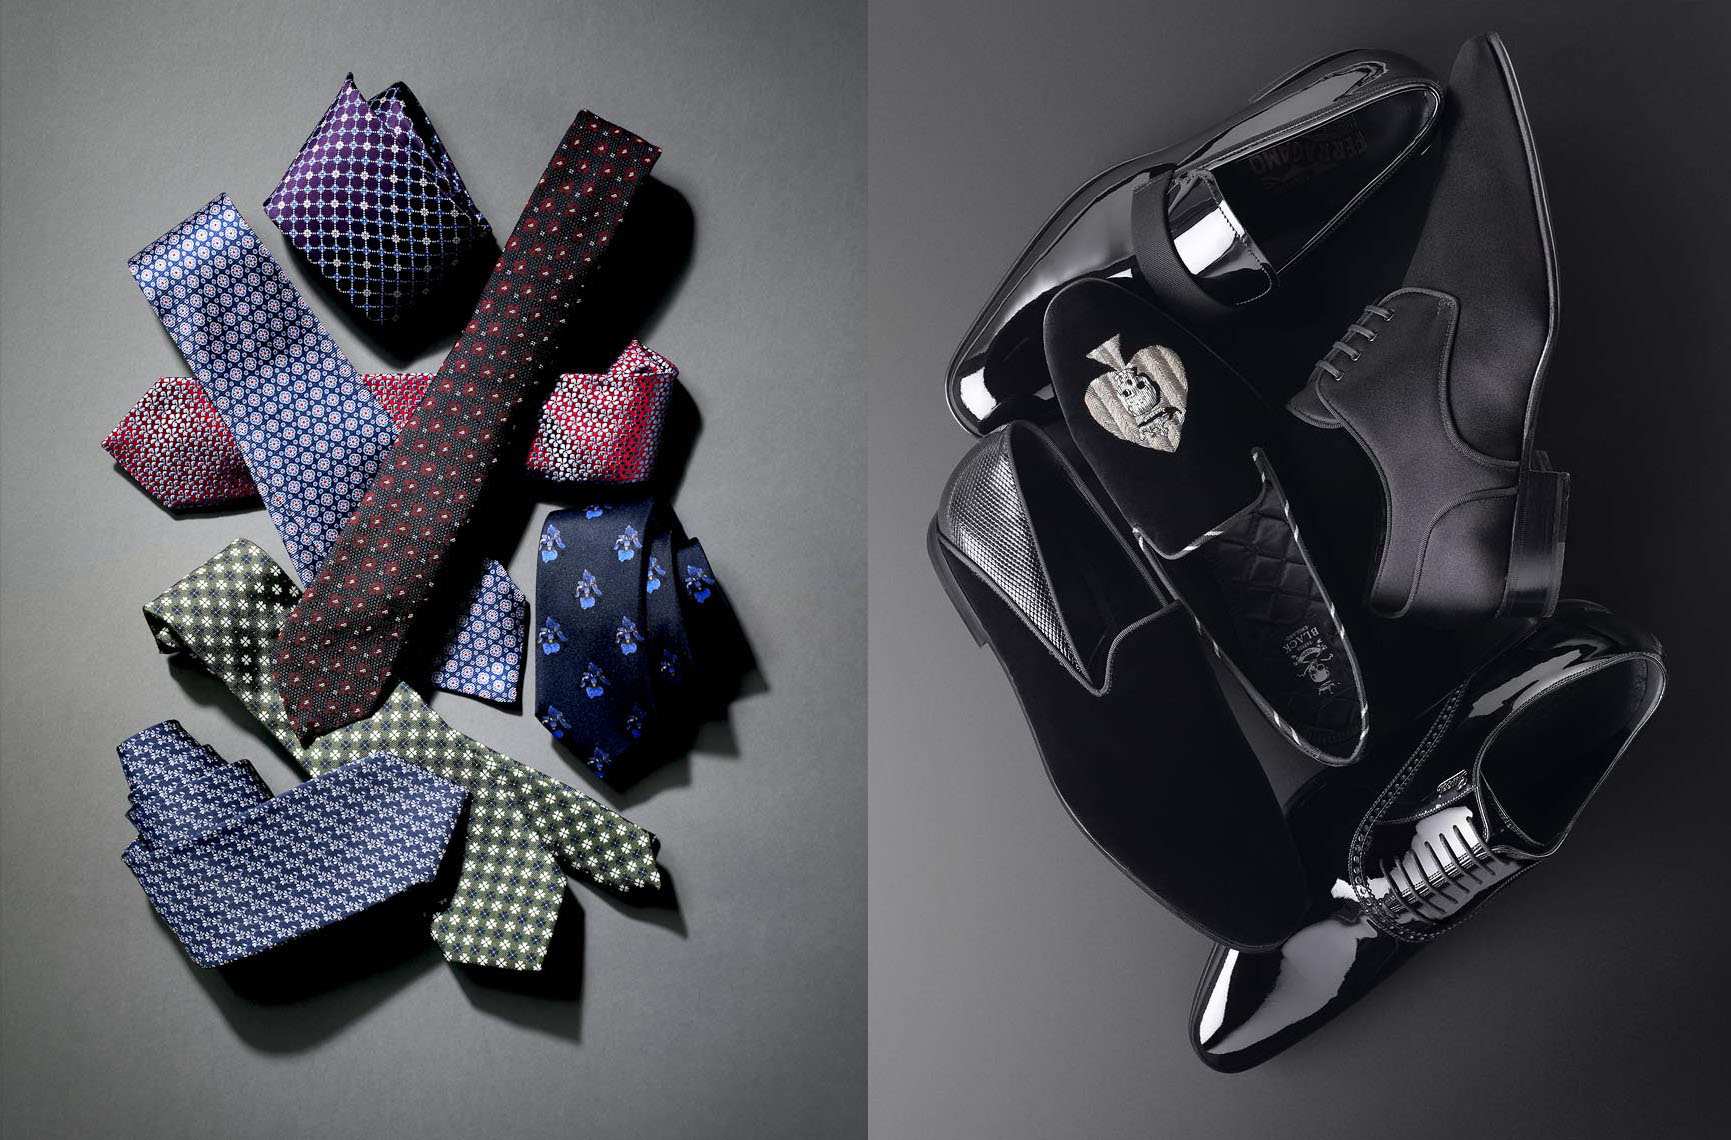 Accessories Still Life, Neckties and Tuxedo Shoes